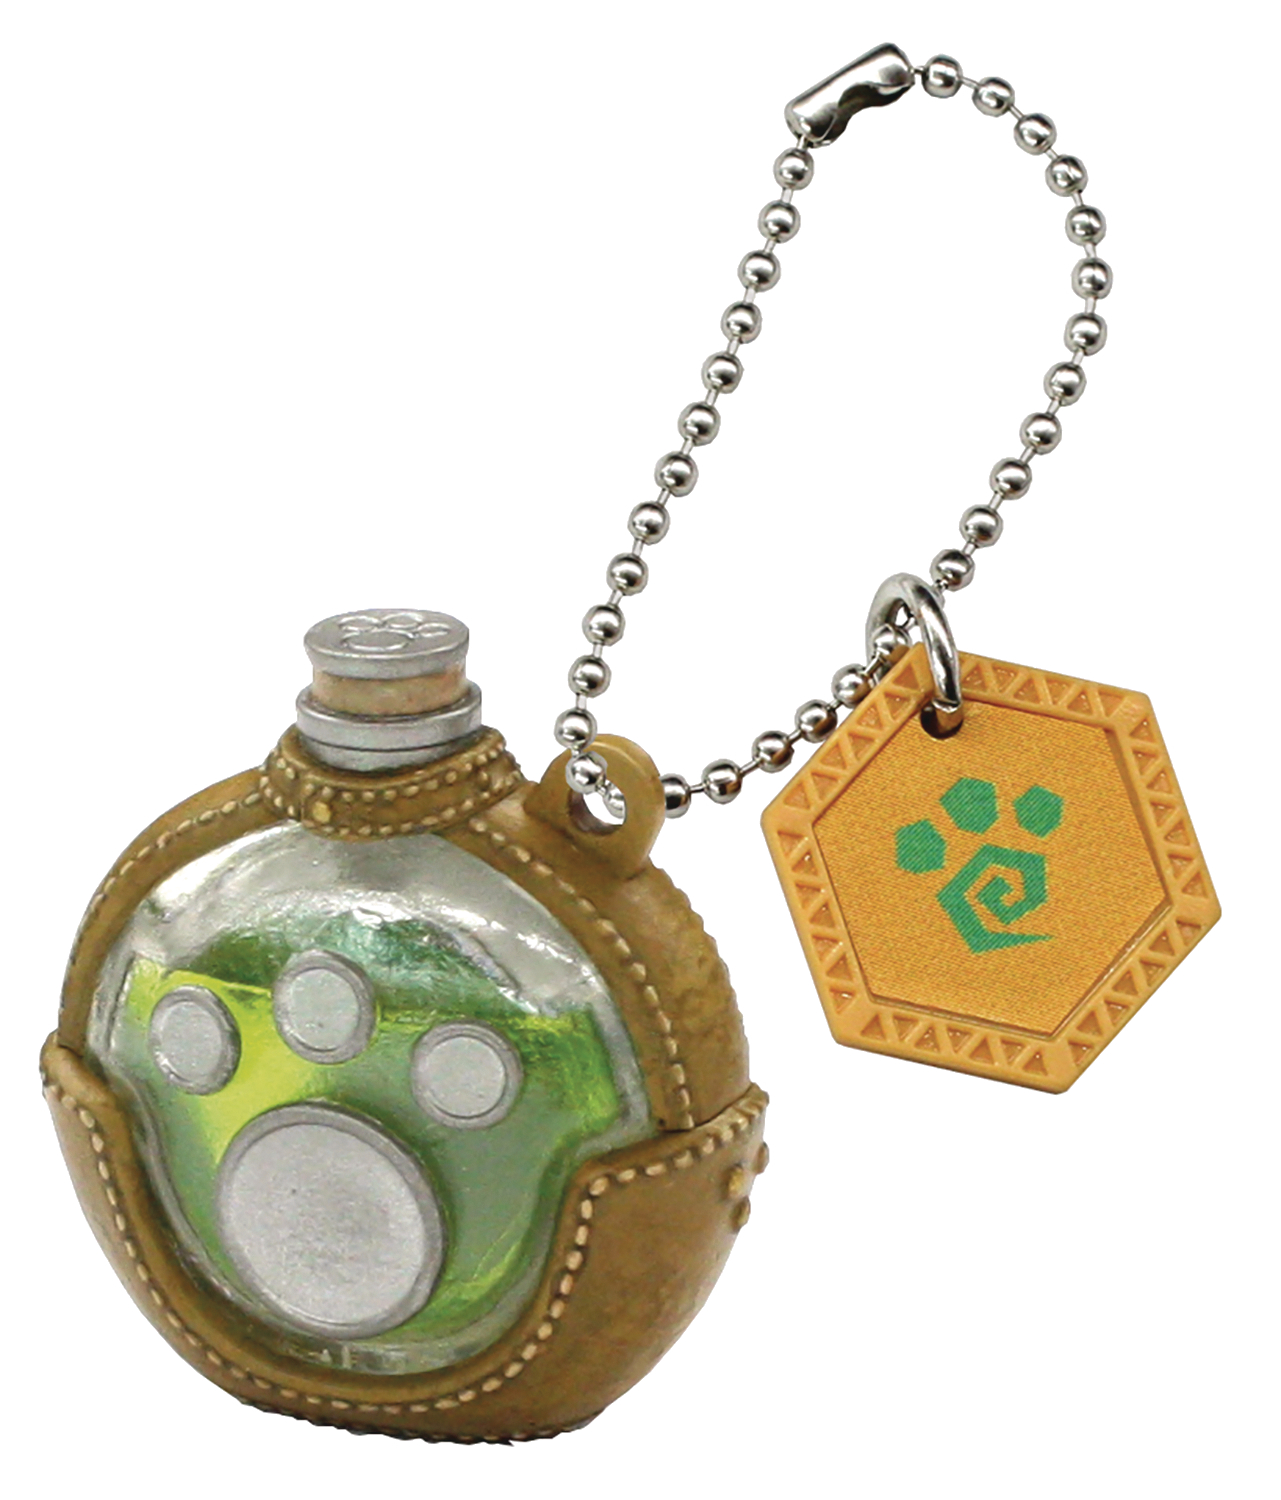 MONSTER HUNTER ITEM MASCOT PLUS PALICO POTION KEYCHAIN